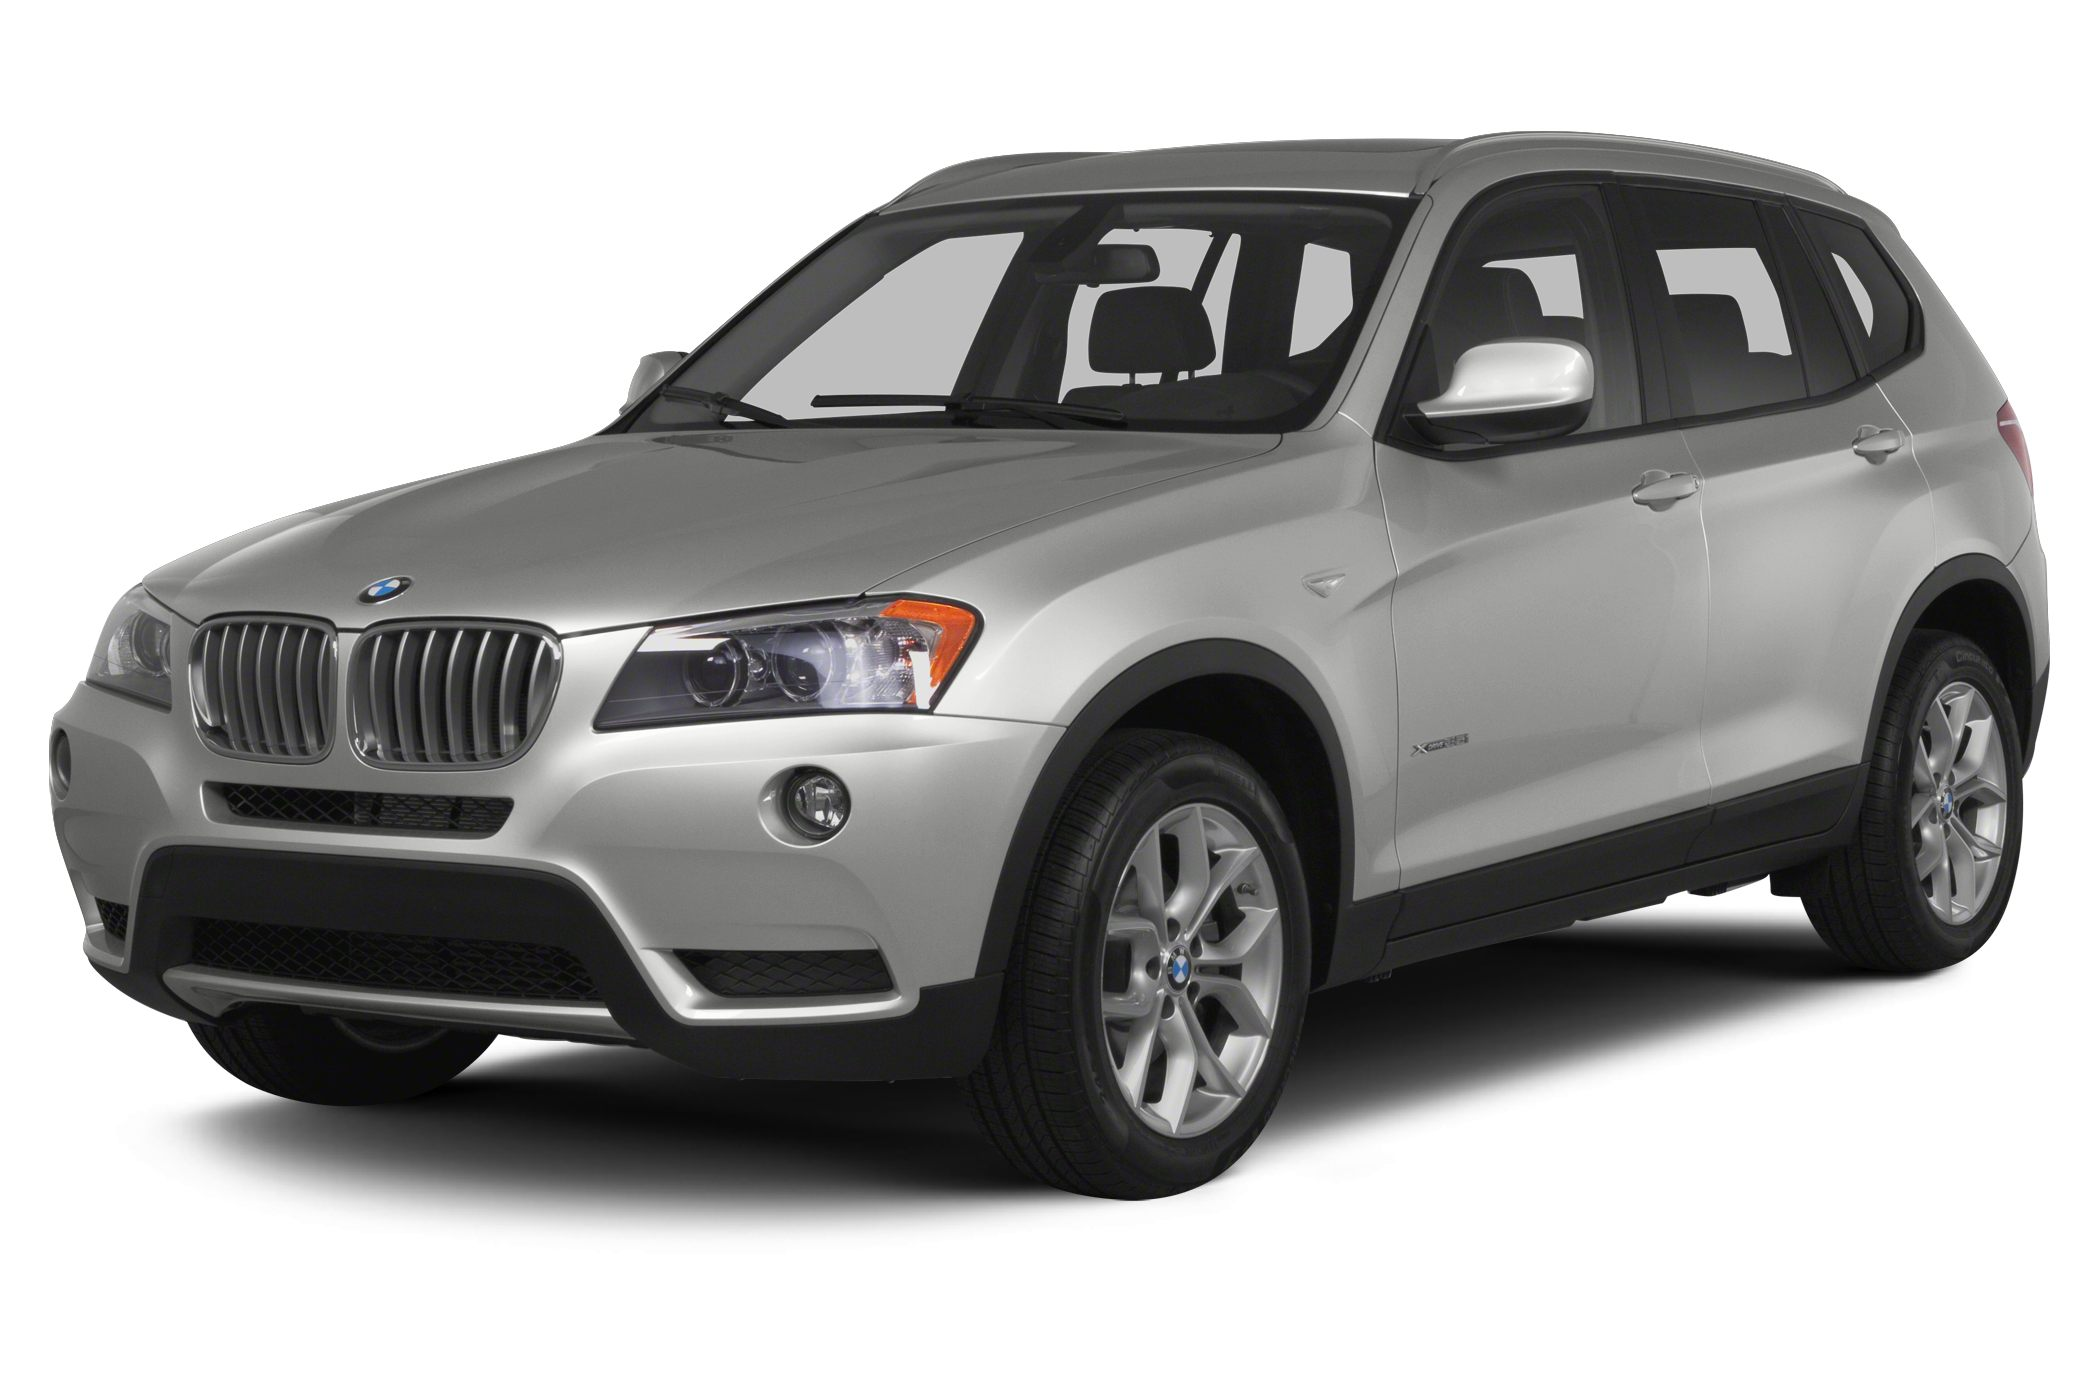 2013 BMW X3 xDrive28i All Wheel Drive never get stuck again Priced to Move - 2719 below KBB Re